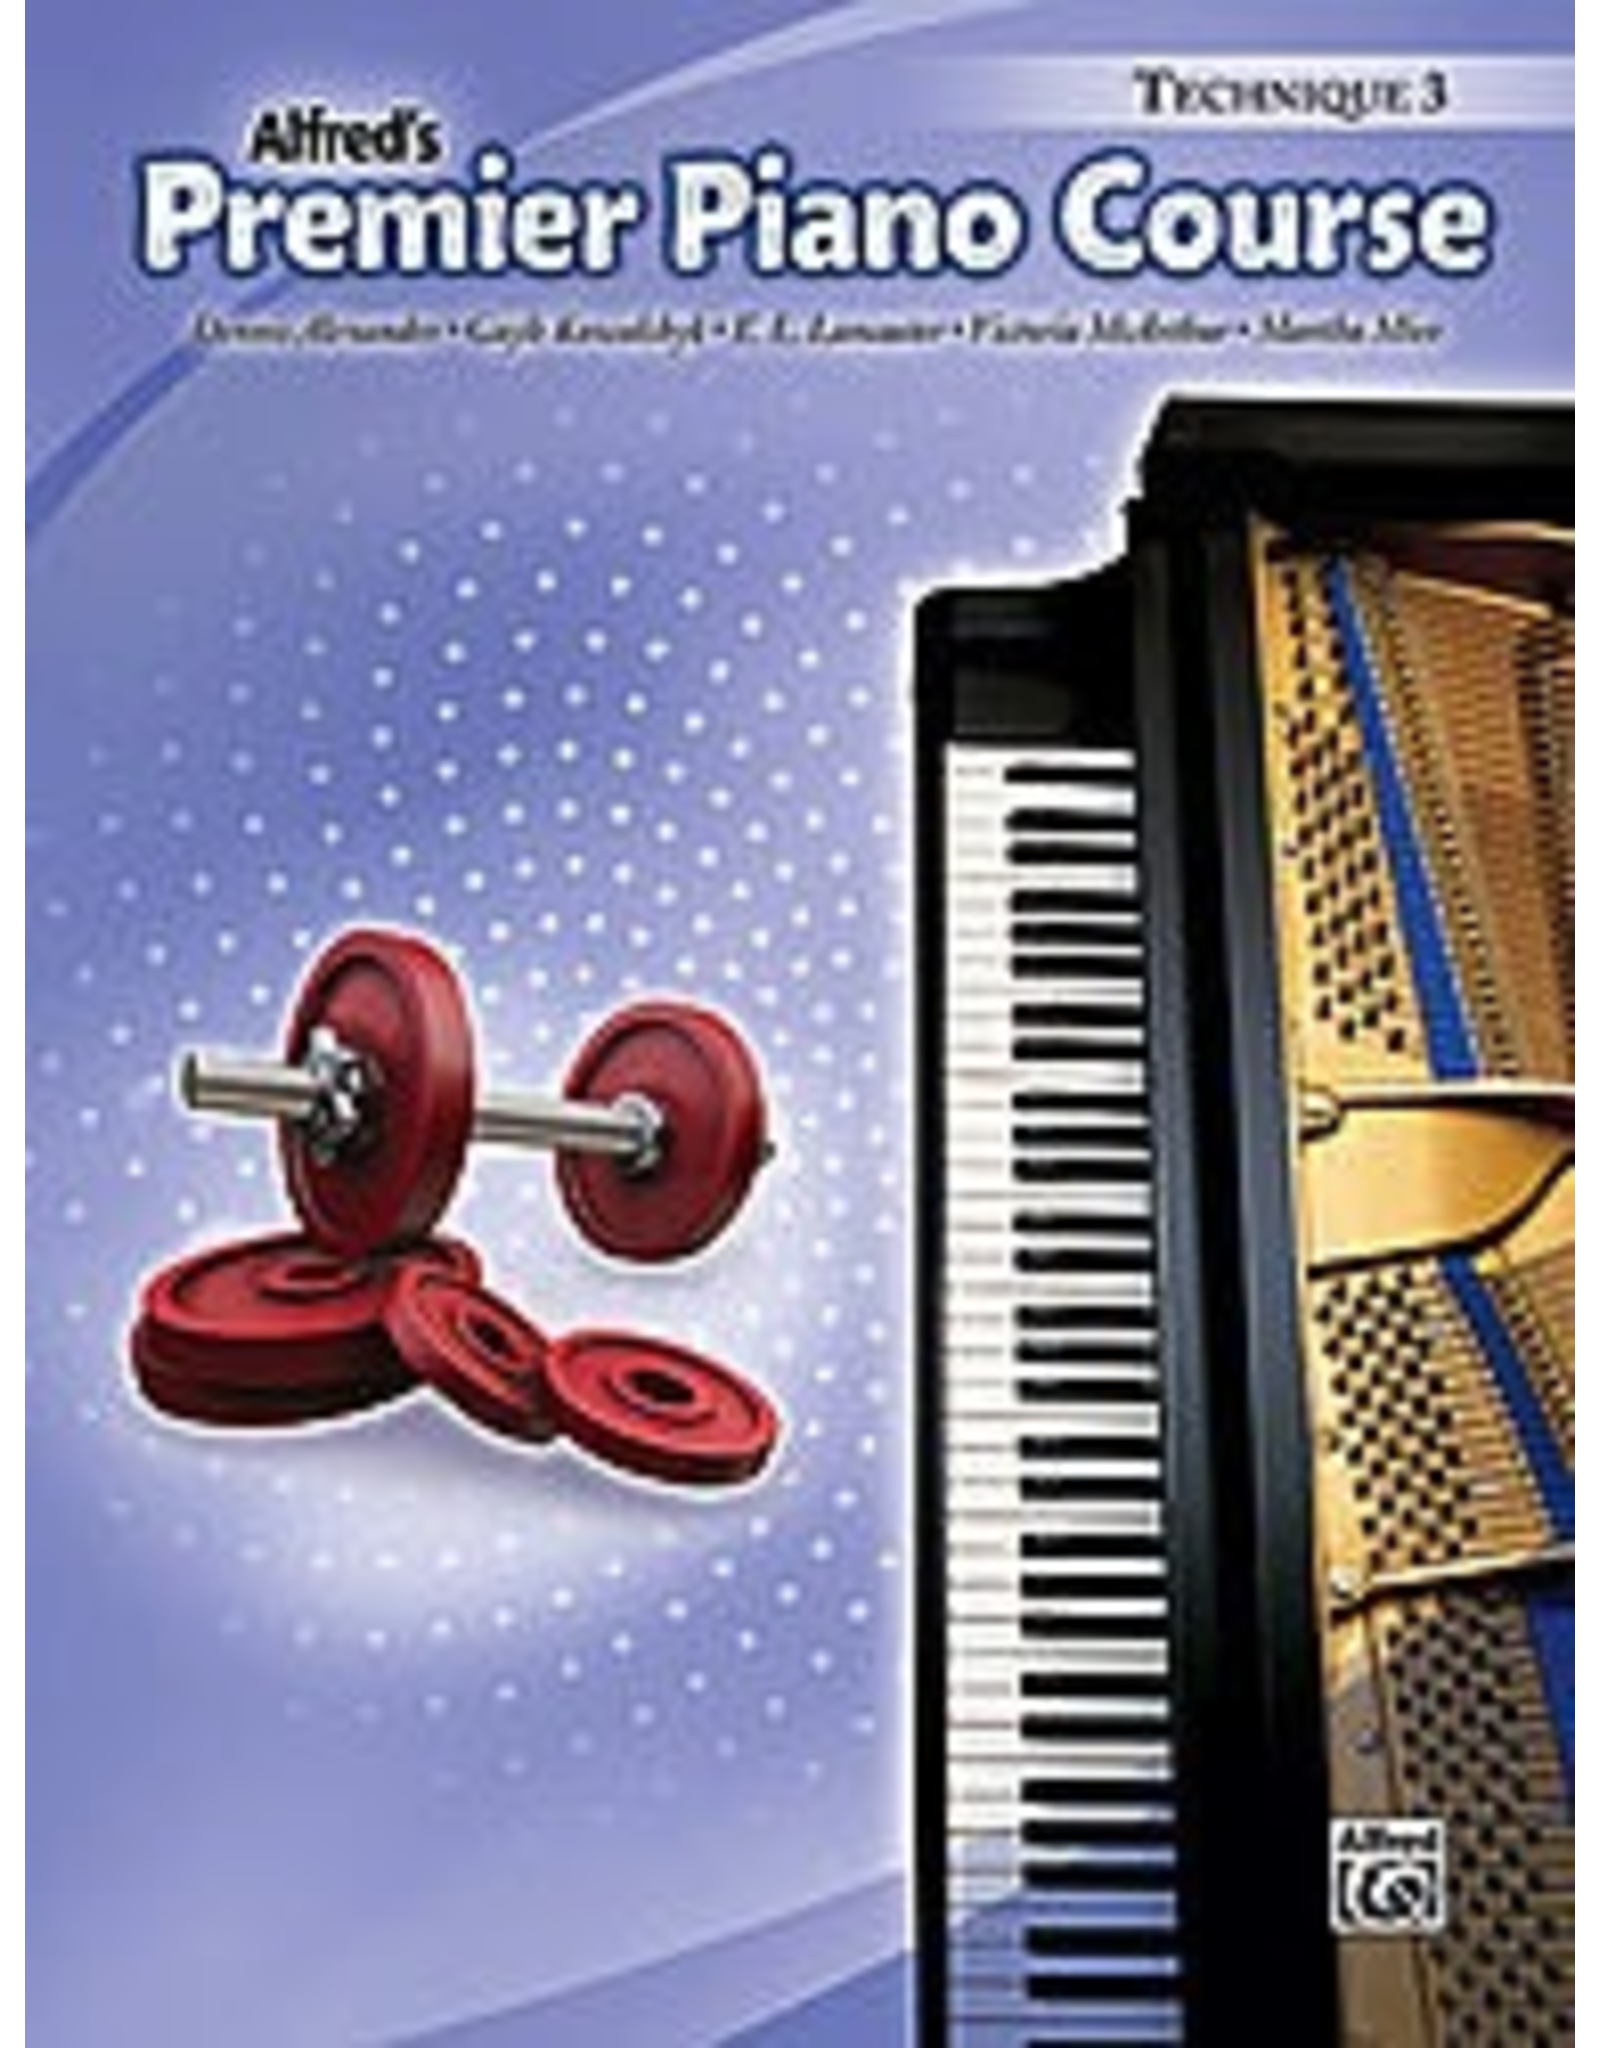 Alfred Alfred's Premier Piano Course Technique Book 3